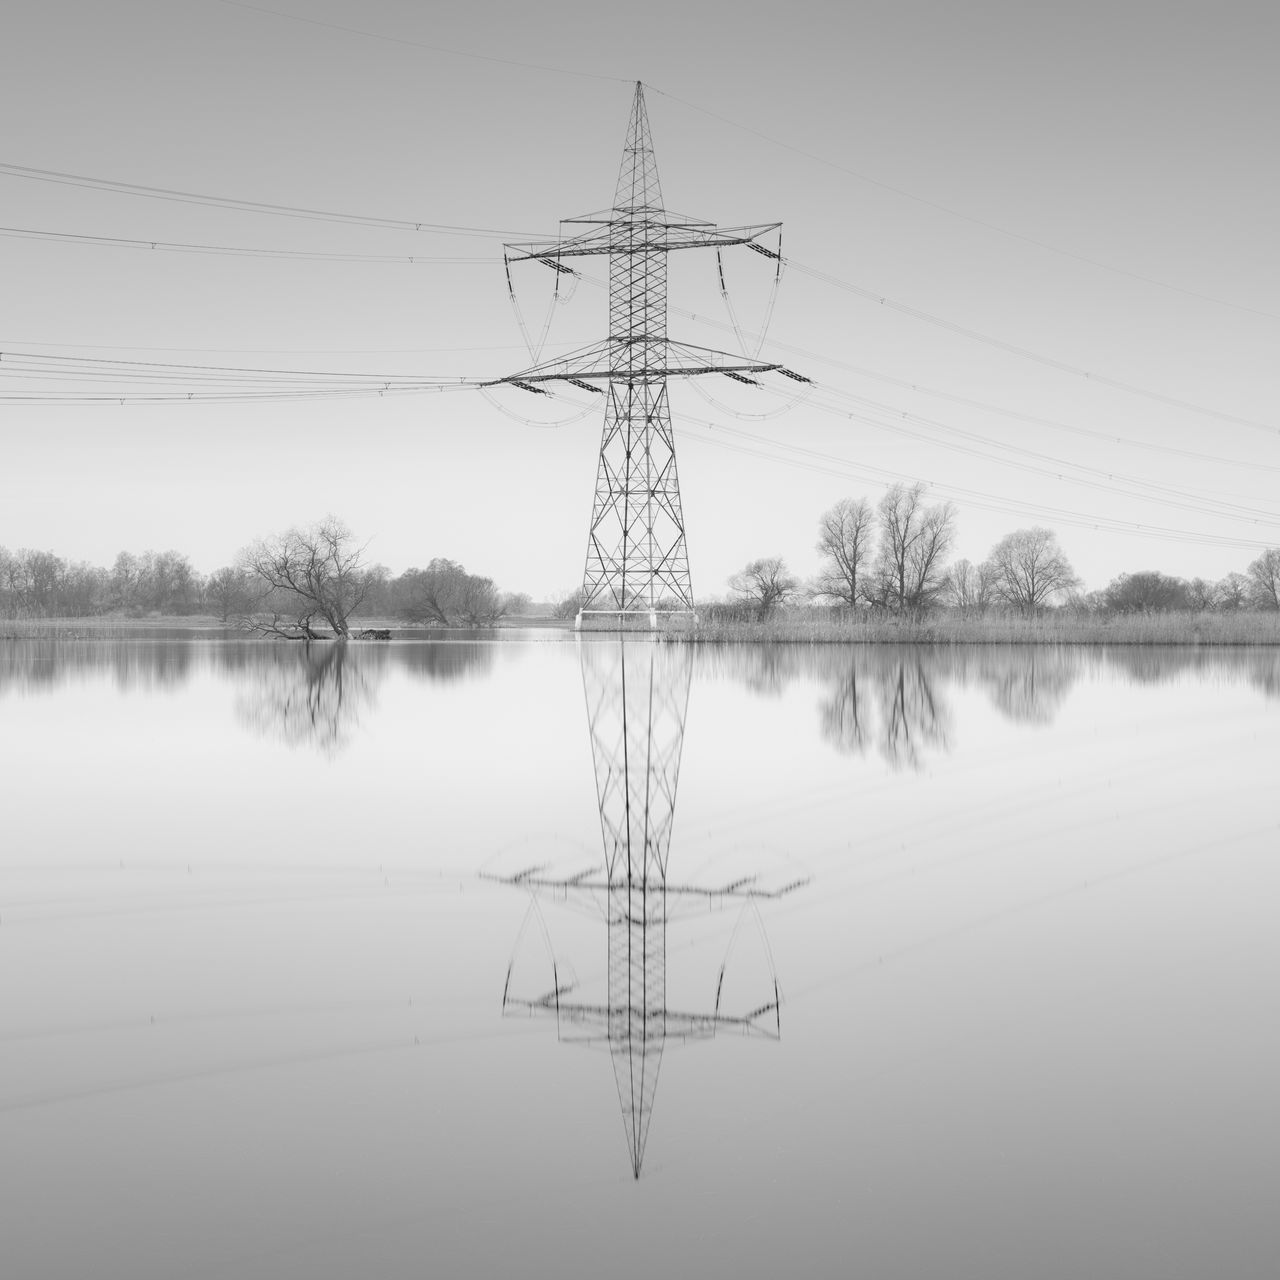 electricity pylon reflection in water Beauty In Nature Black And White Brandenburg Cable Connection Day Electricity  Electricity Pylon Fine Art Fuel And Power Generation Havelland Monochrome Nature No People Outdoors Philipp Dase Power Line  Power Lines Power Supply Reflection Sky Standing Water Symmetry Tree Water